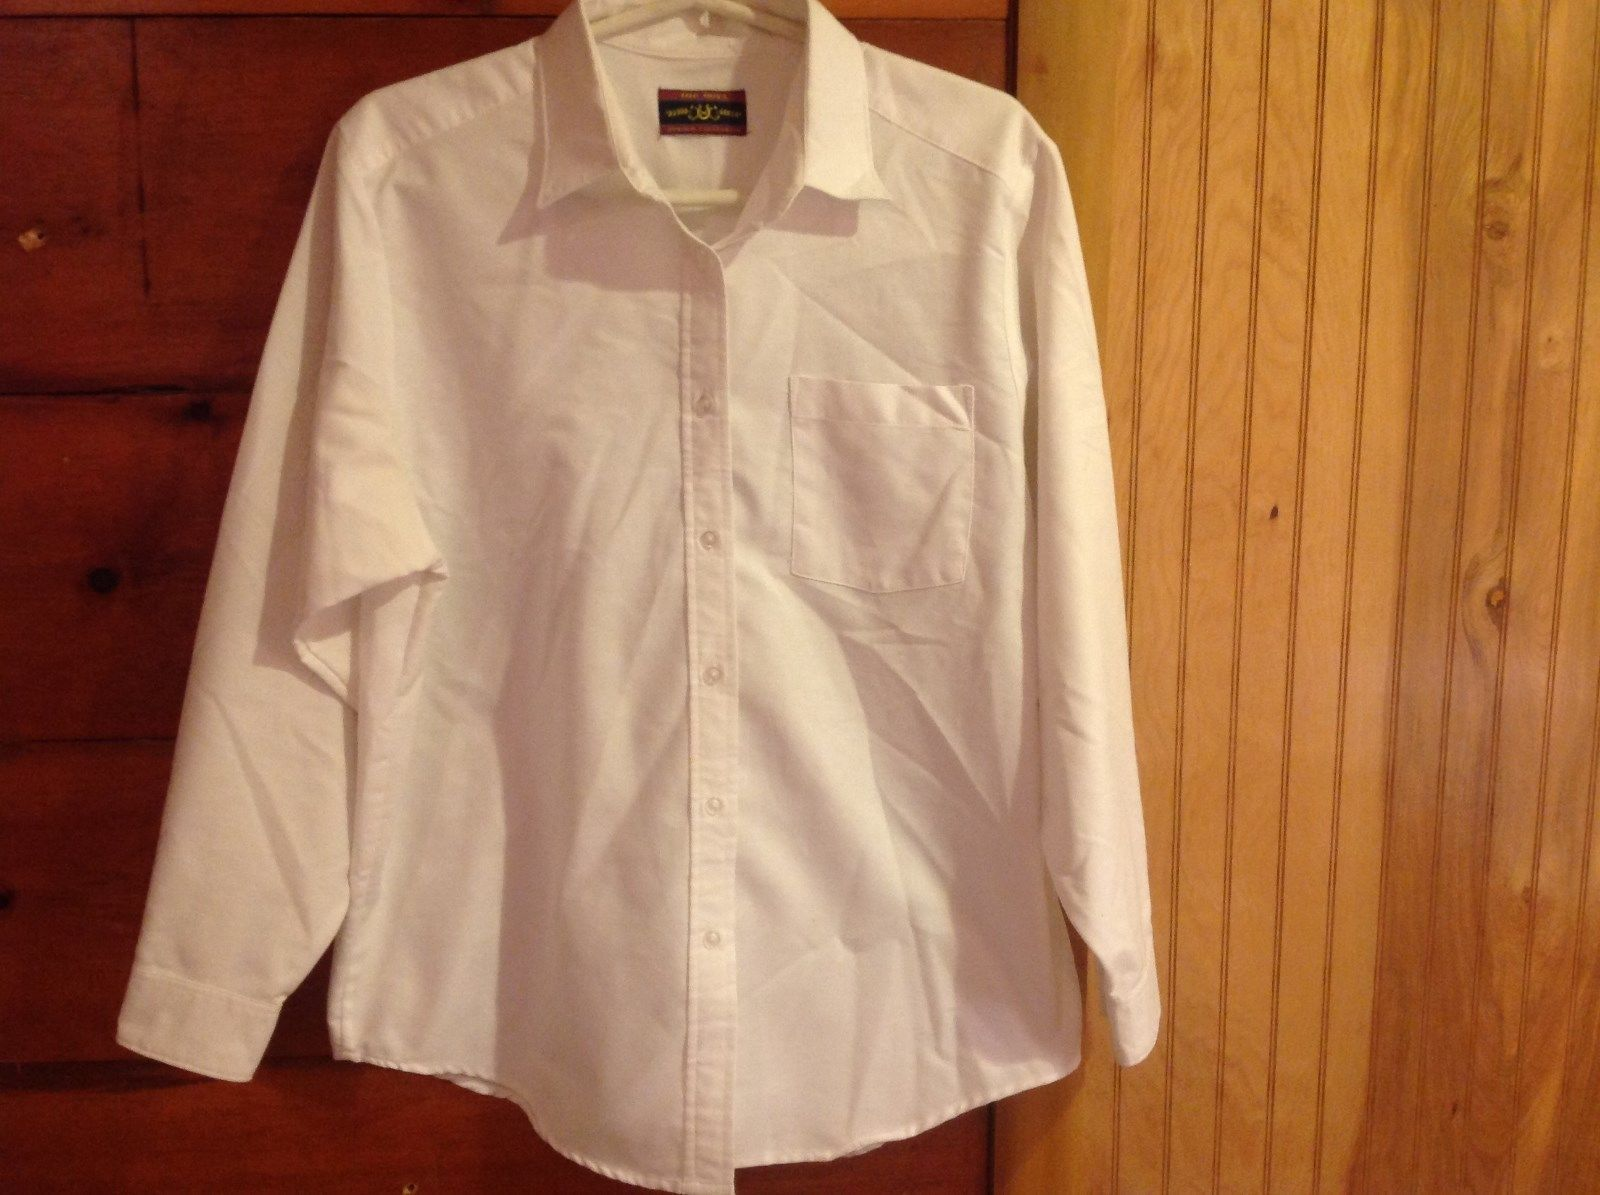 The Dova Oxford Collection White Button Down Long Sleeve Shirt with Collar